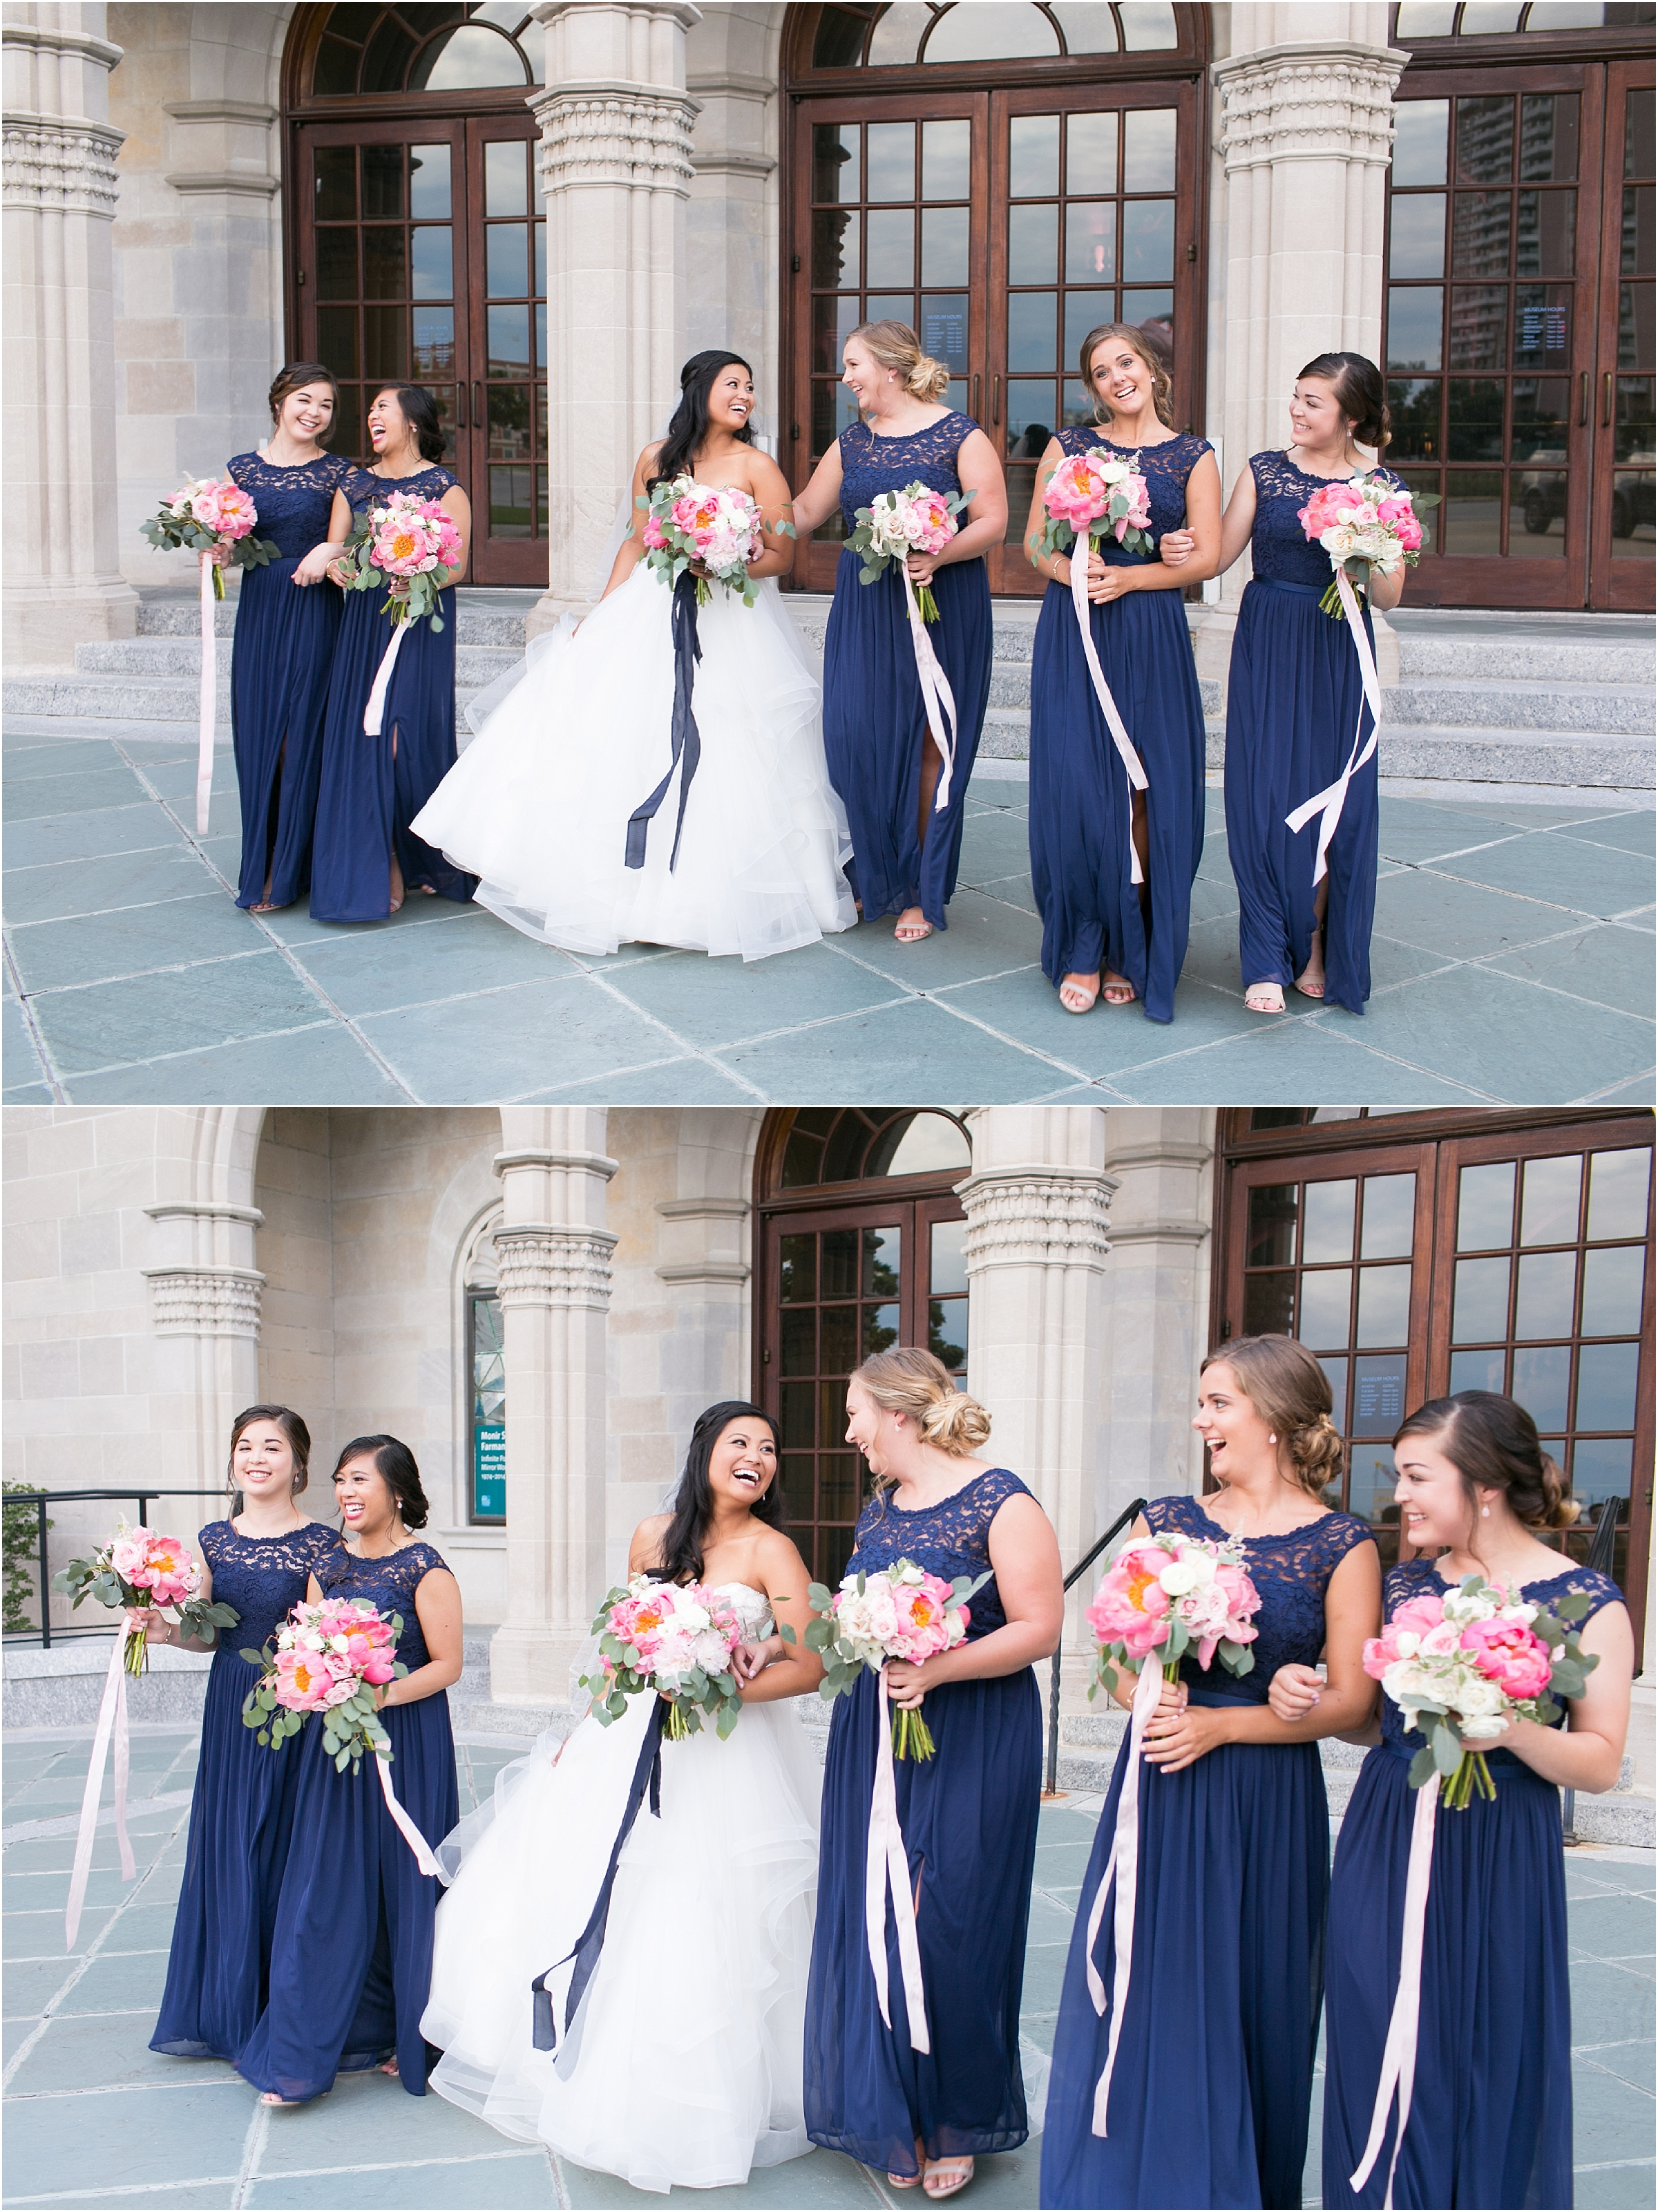 Chrysler Museum of Art grand elegant bridal party portrait courtney inghram events maya couture flawless on site blush tones